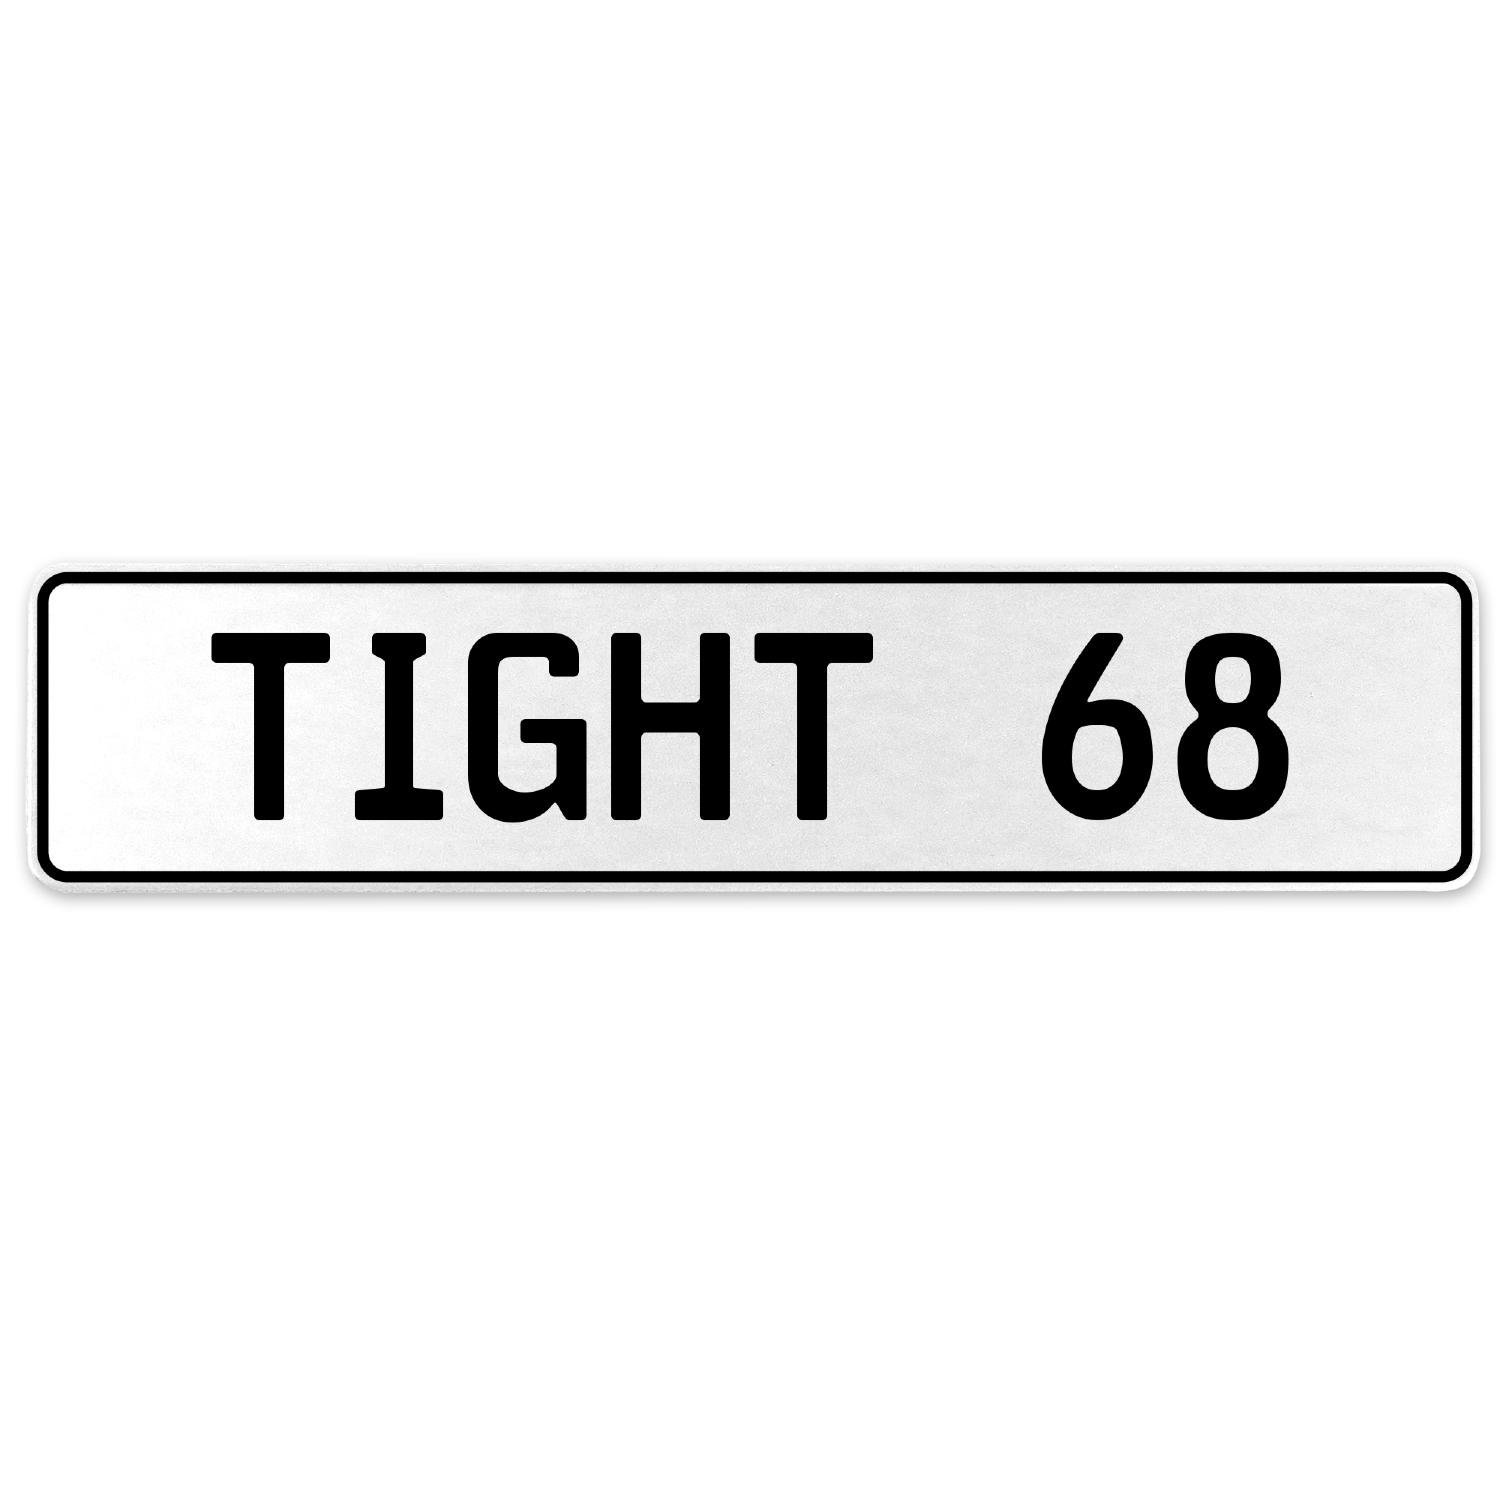 Vintage Parts 554764 Tight 68 White Stamped Aluminum European License Plate